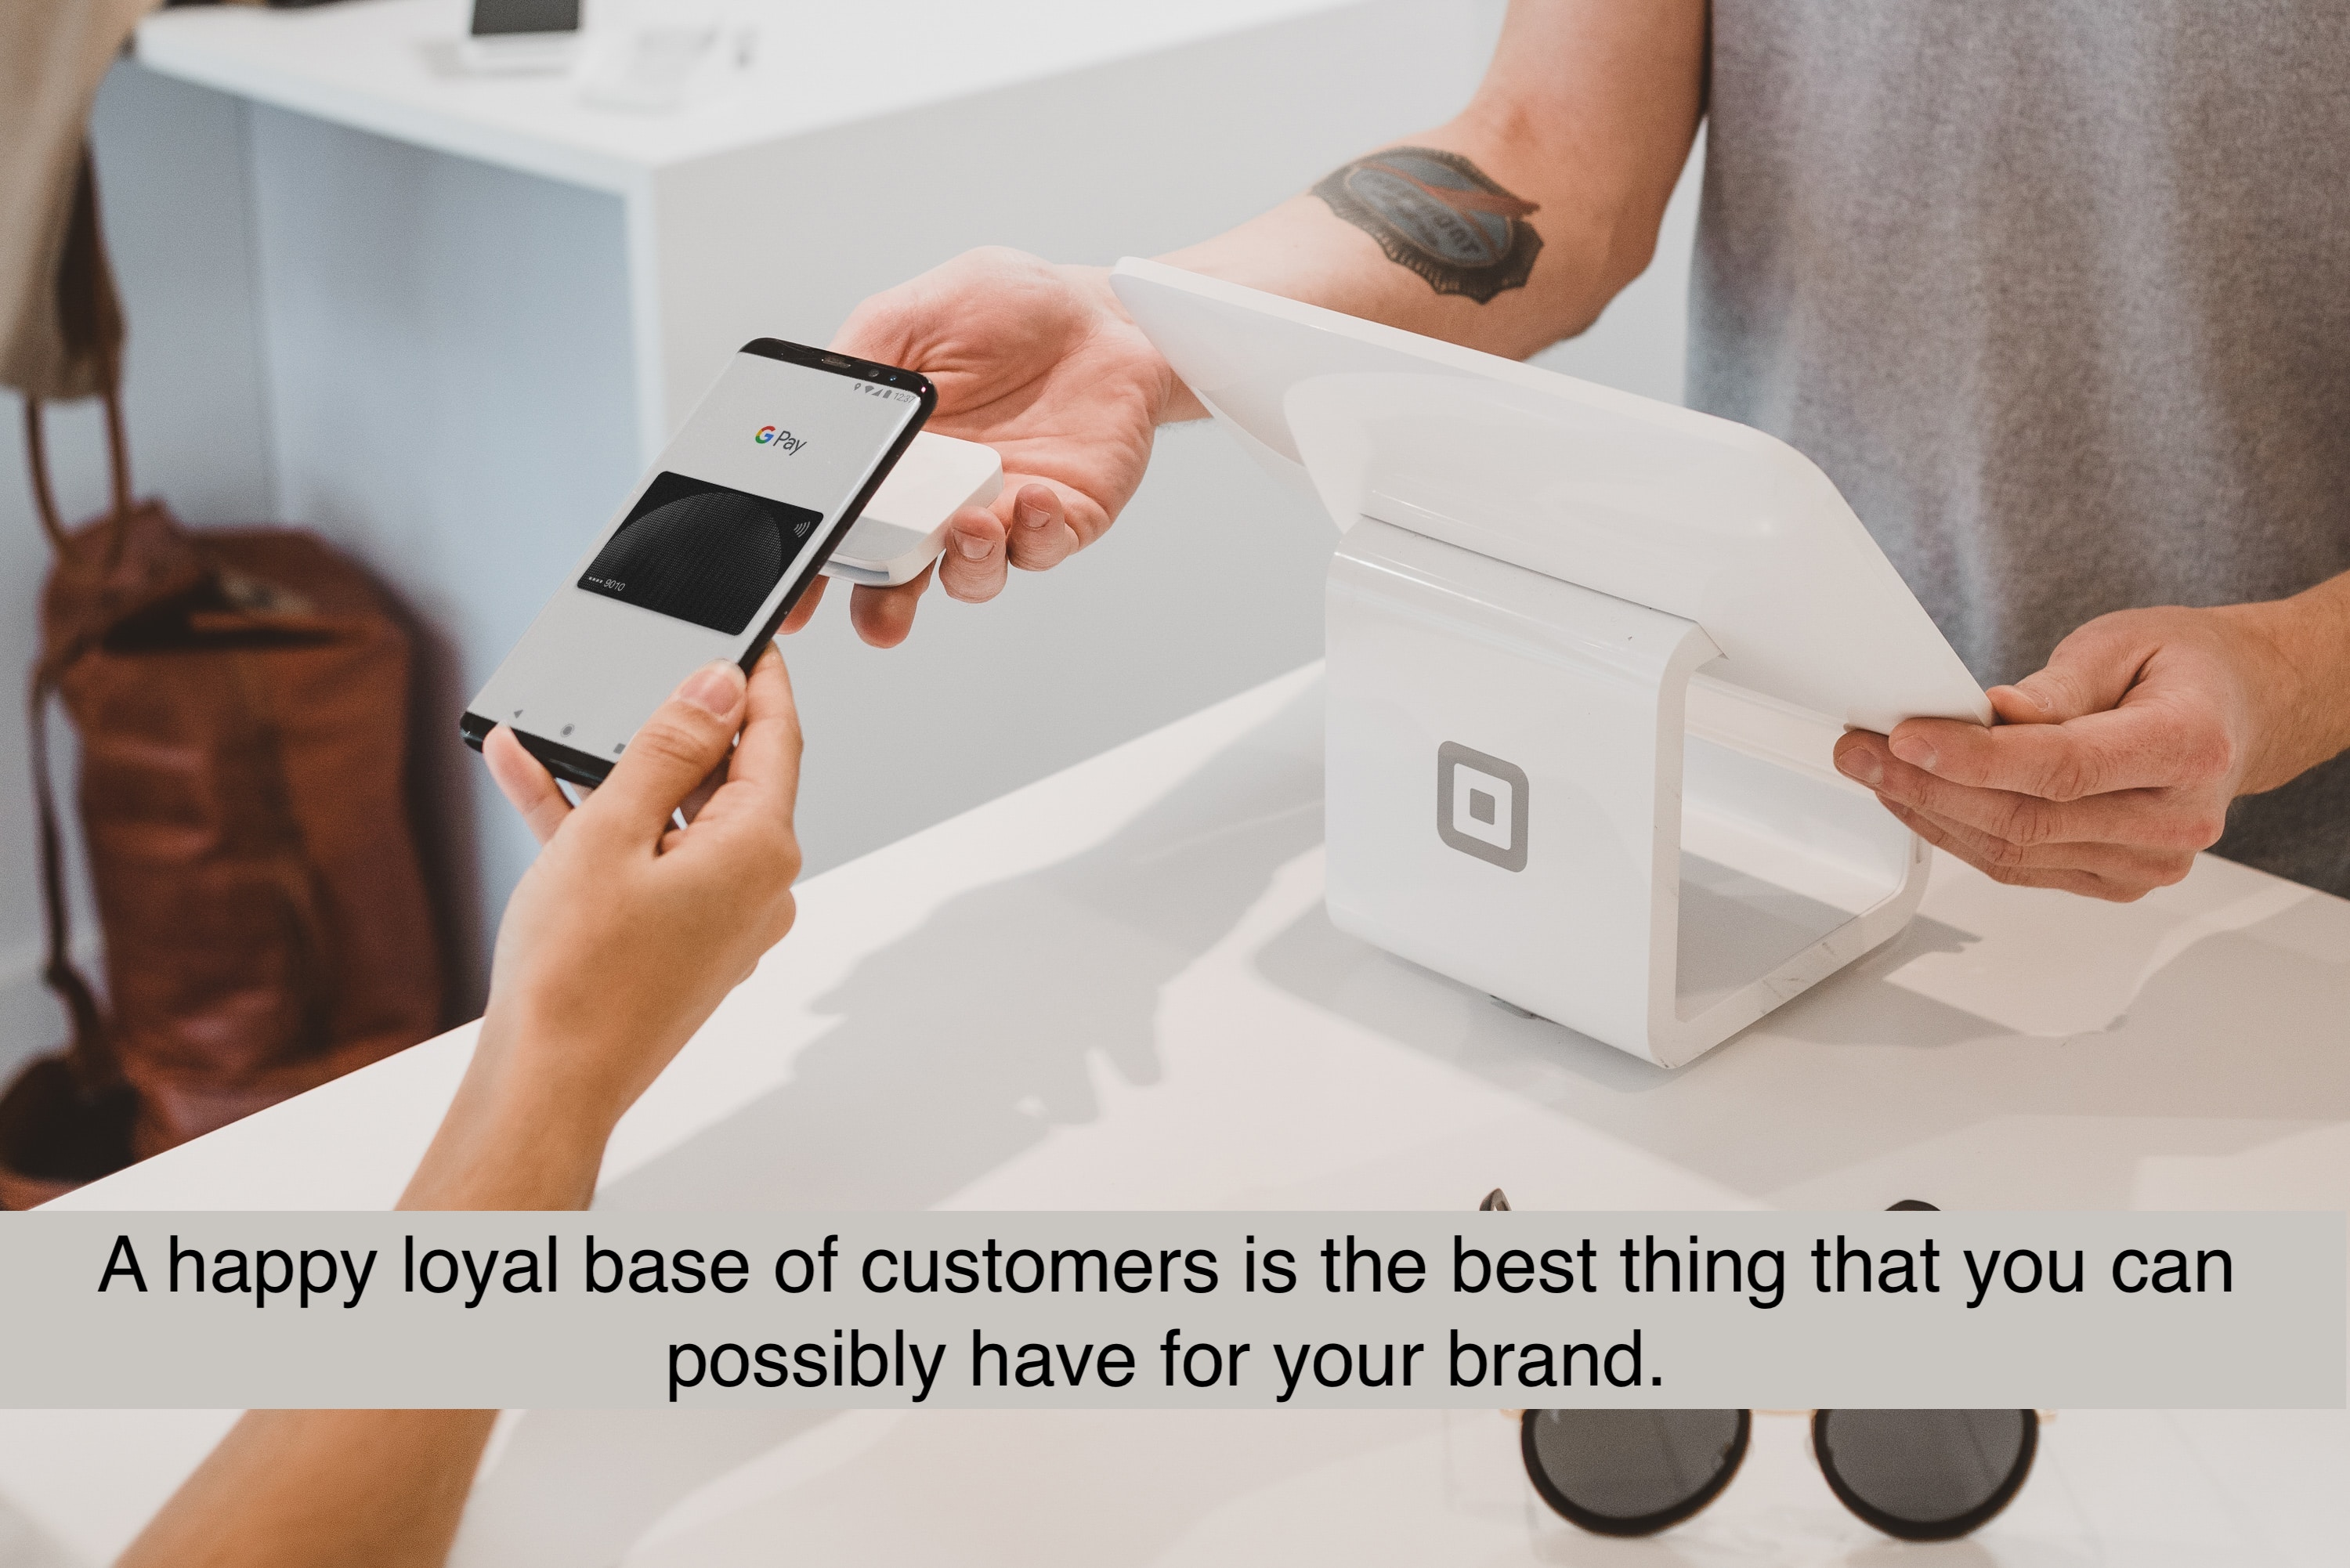 A happy loyal base of customers is the best thing that you can possibly have for your brand.